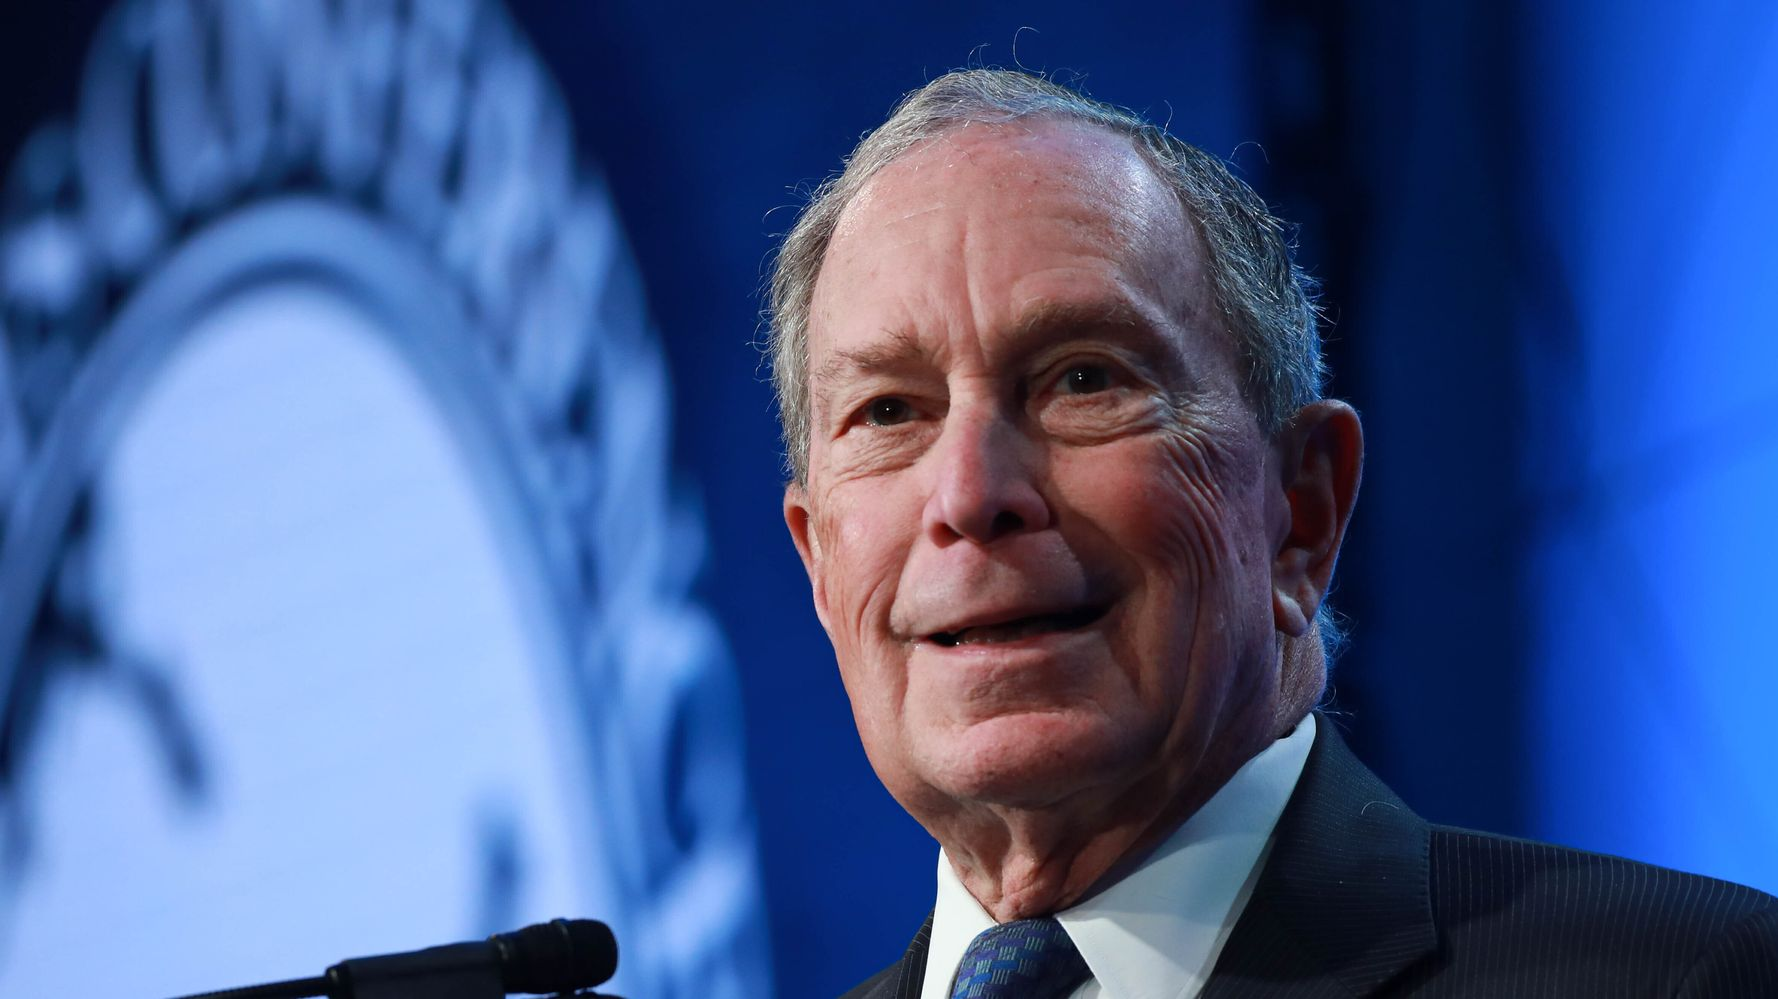 Westlake Legal Group 5e423d99250000550033d5fd Bloomberg Wins Both Democratic And Republican Vote In America's Weirdest Primary